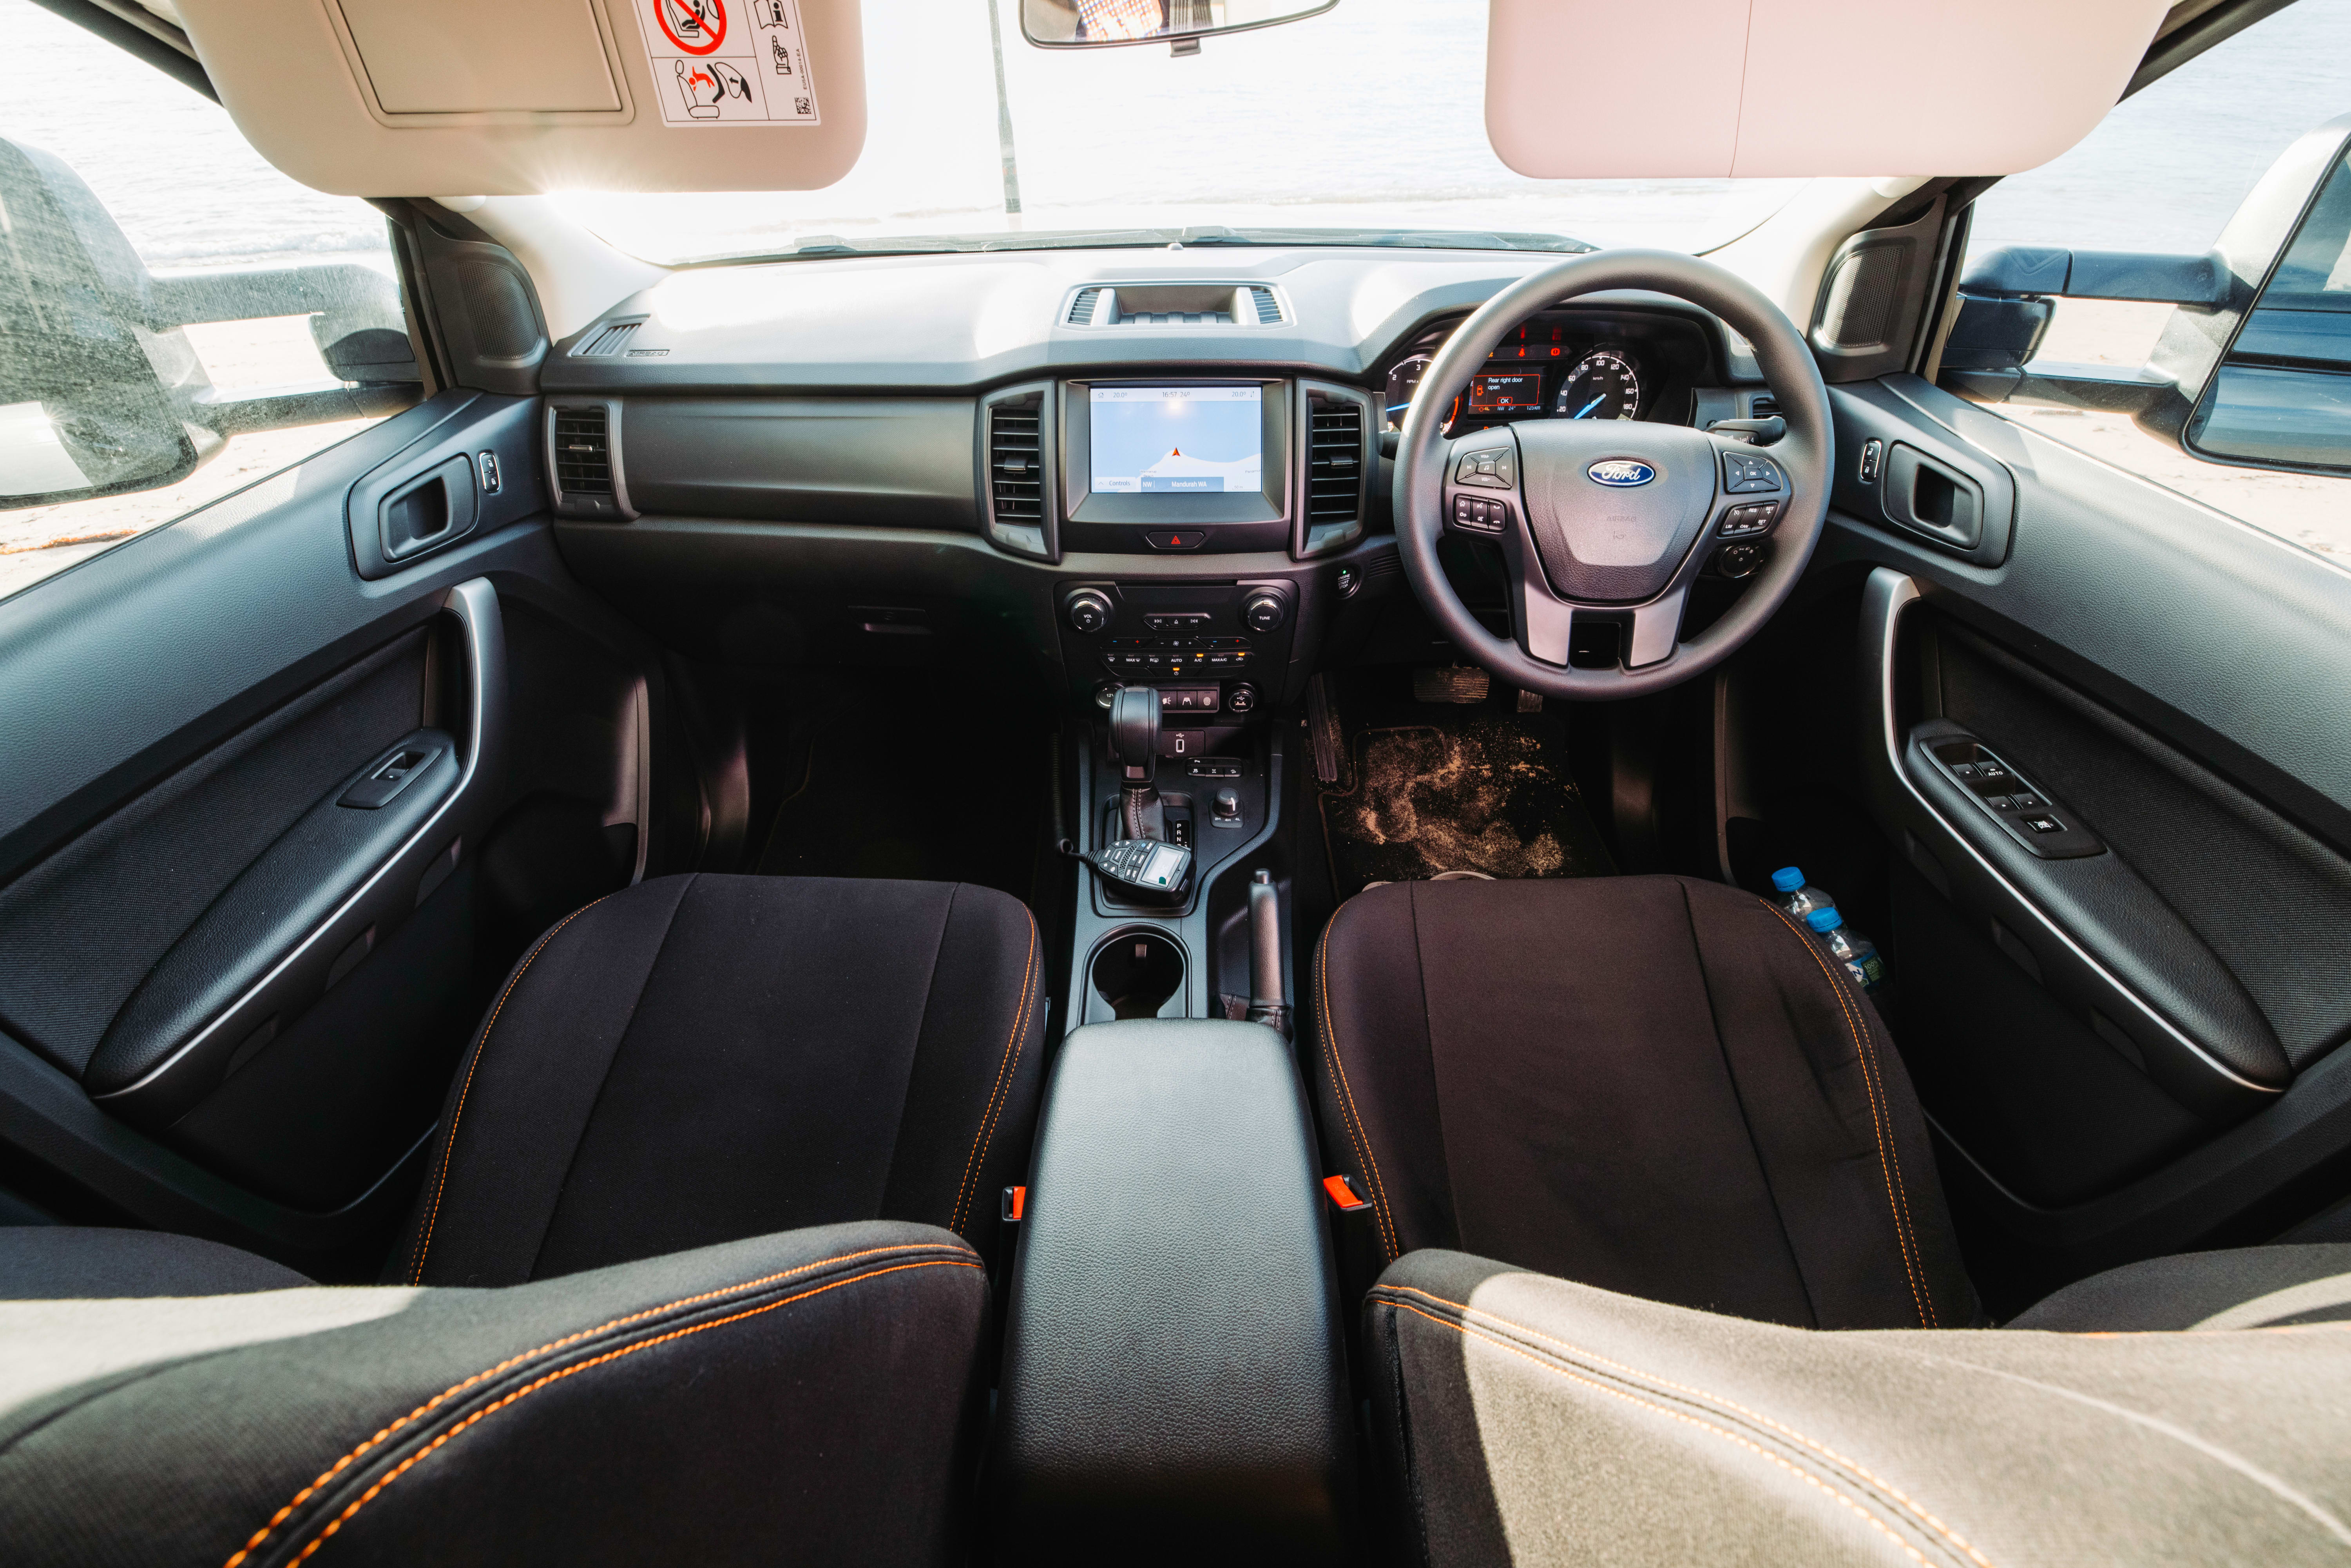 4 X 4 Australia Reviews 2021 August 2021 Core Offroad Ford Ranger Interior